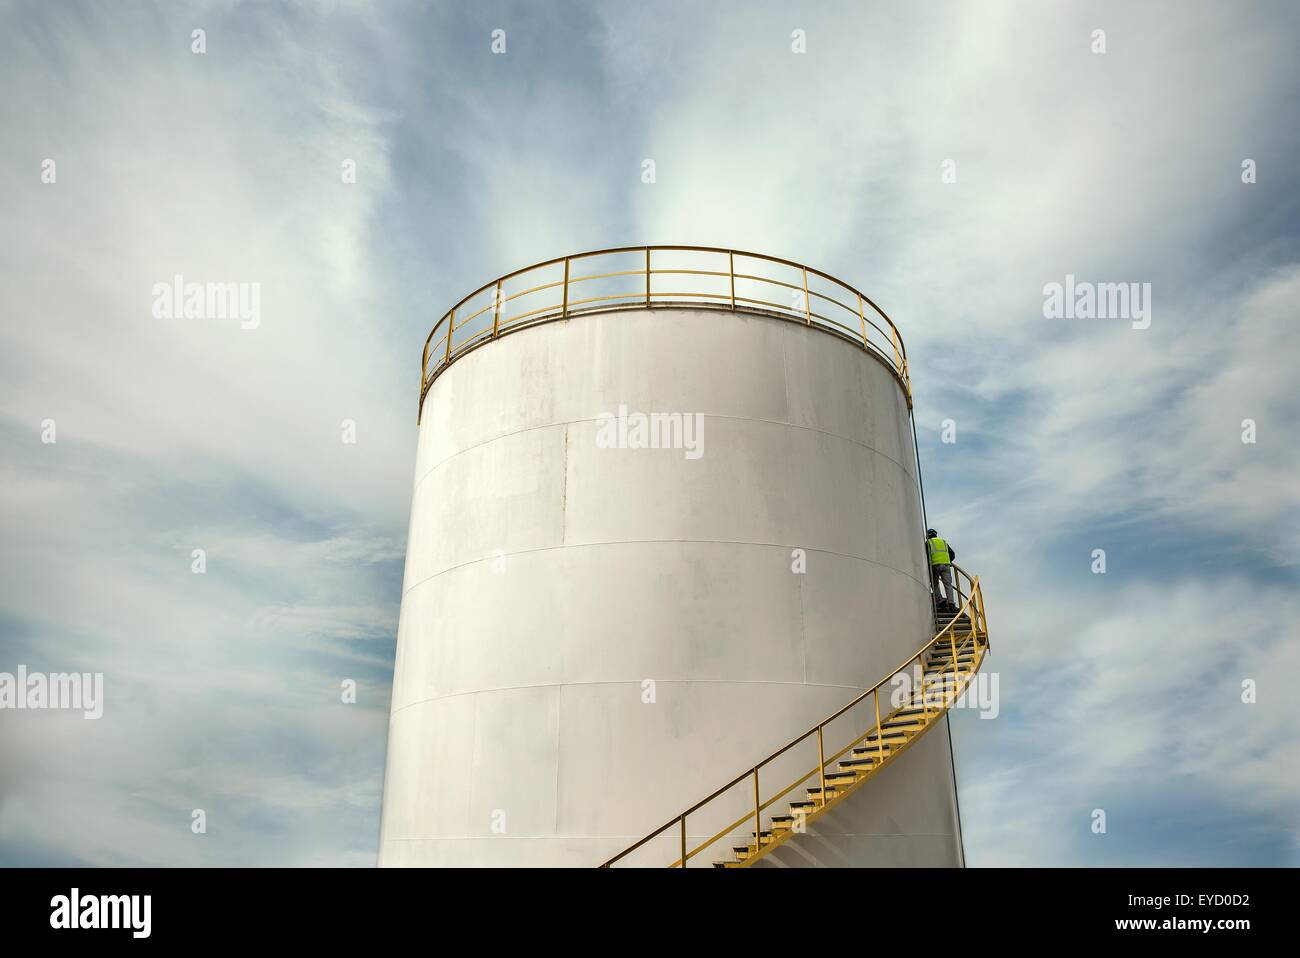 Industrial worker climbing stairs on oil storage tank - Stock Image